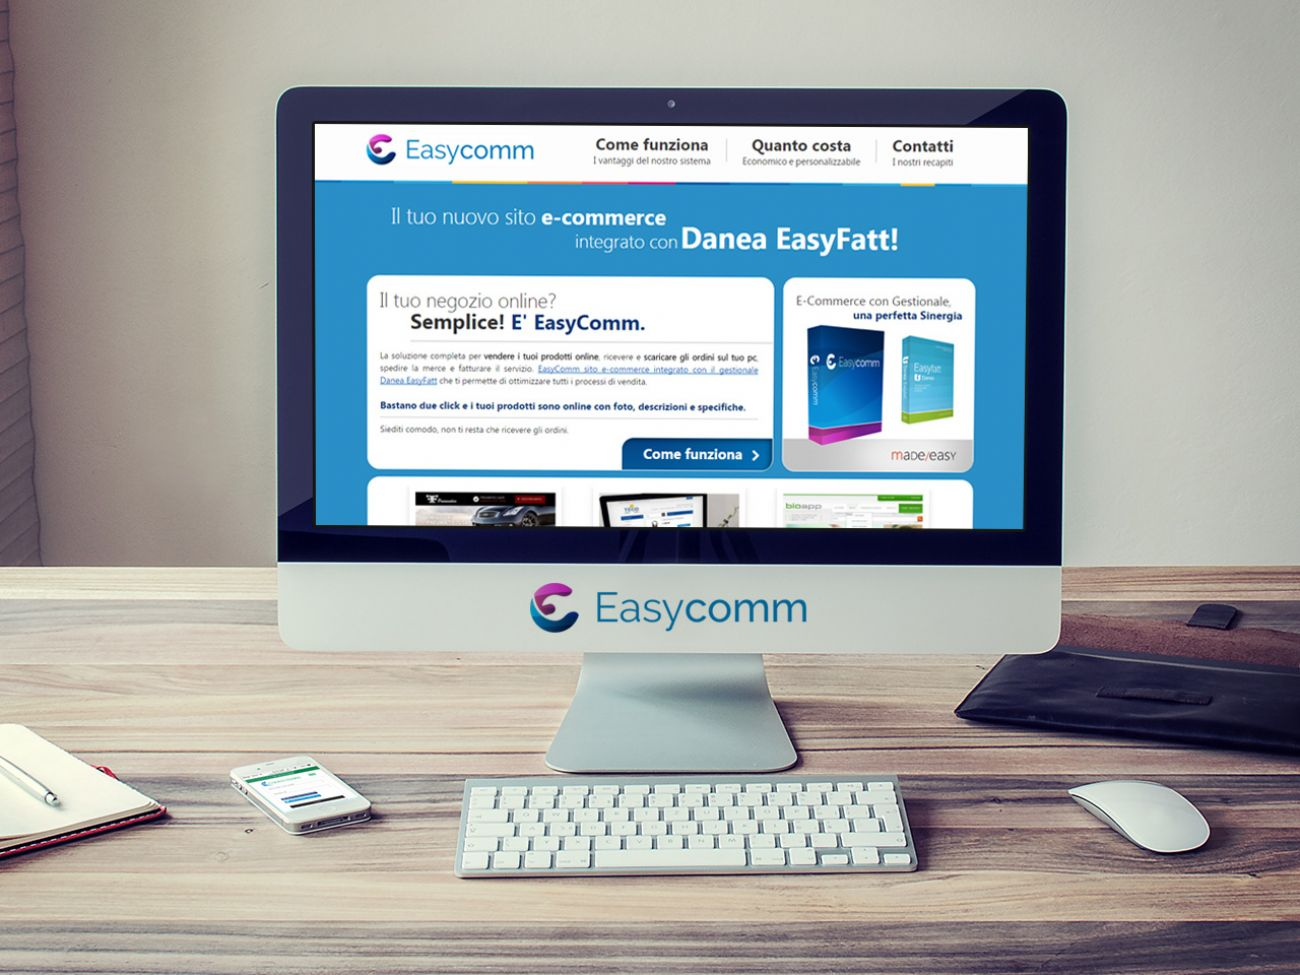 EasyComm e-commerce integrato EasyFatt